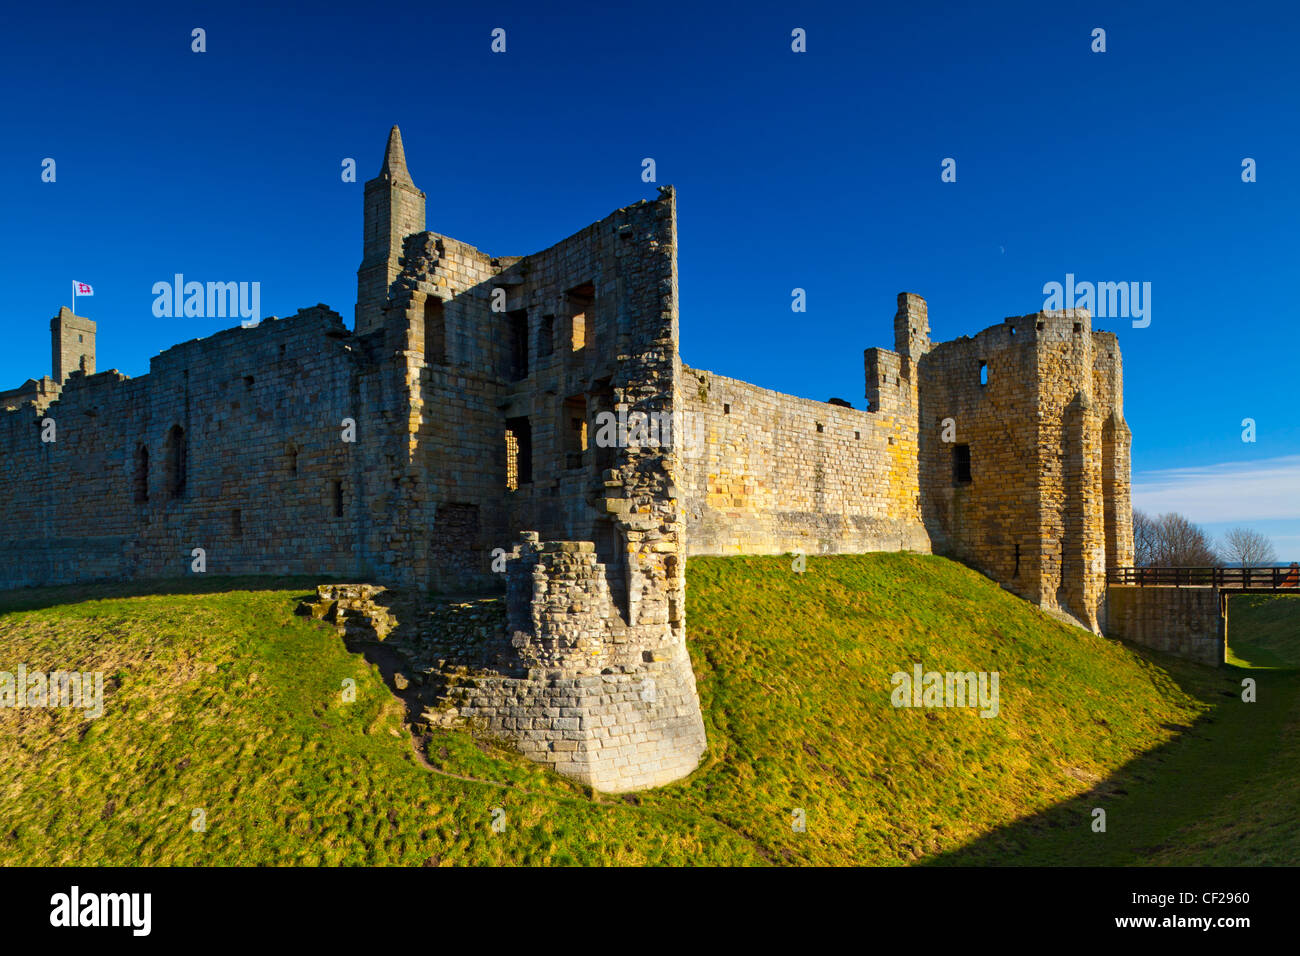 Warkworth Castle, a 12th-century stone motte and bailey fortress located near the Northumberland Heritage Coast. - Stock Image